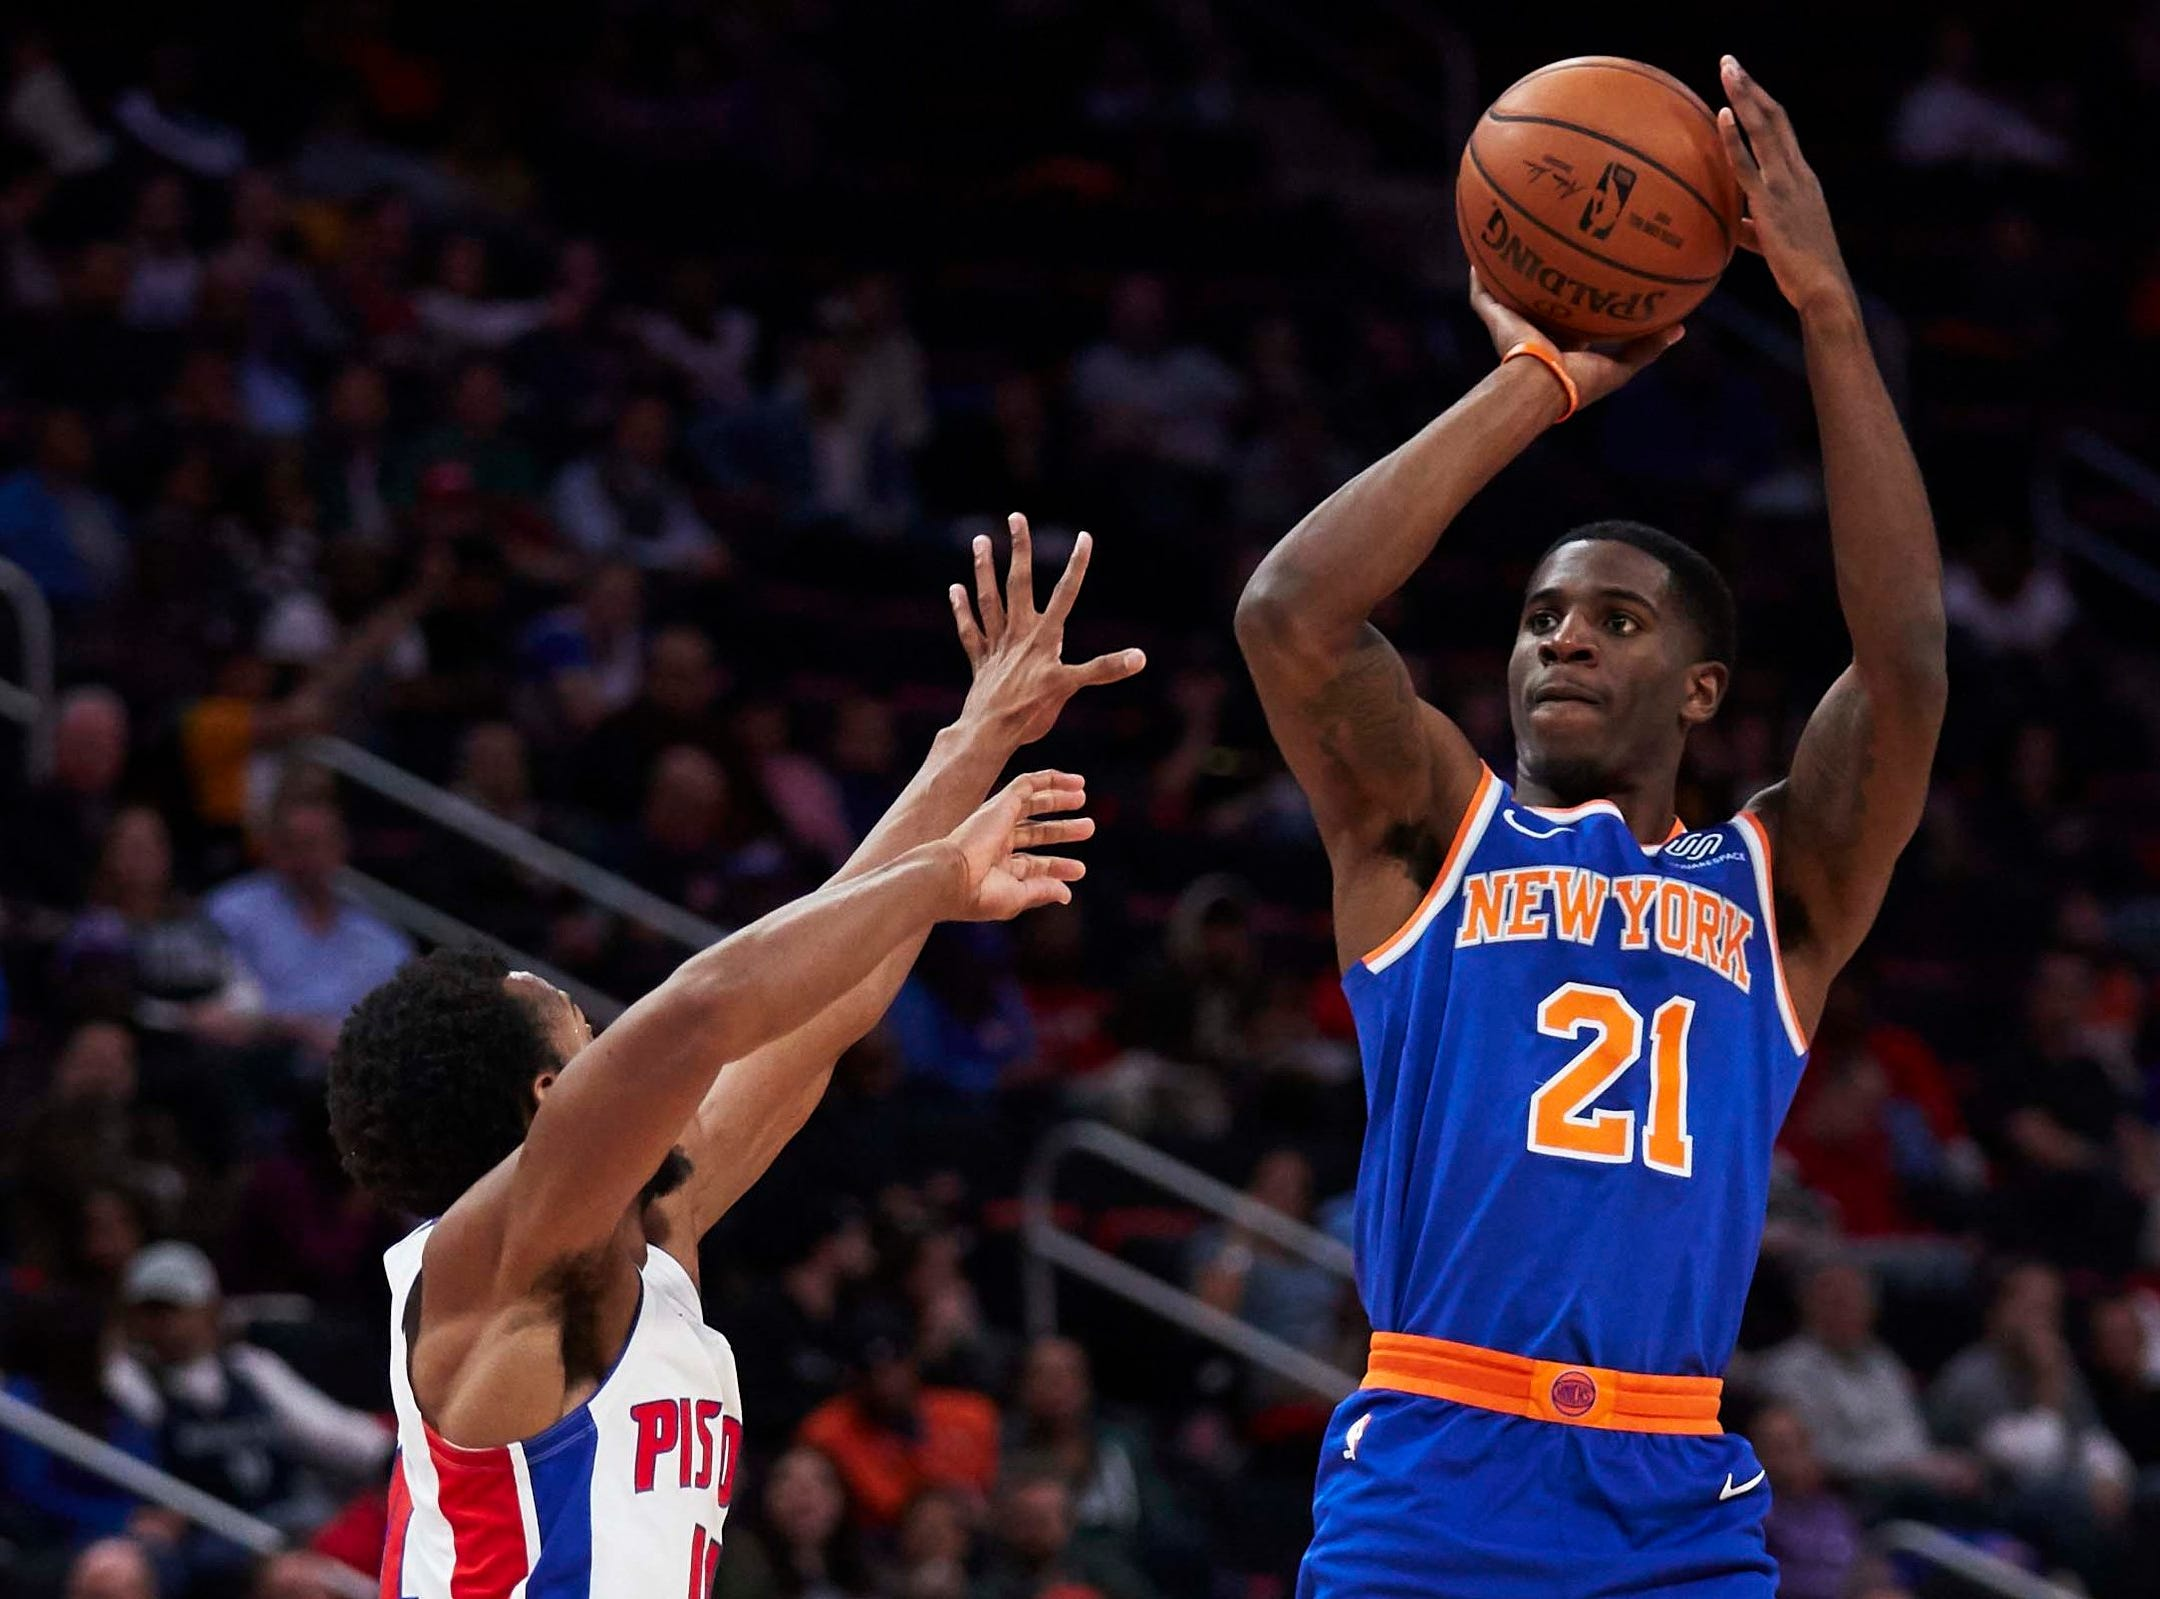 New York Knicks guard Damyean Dotson (21) shoots on Detroit Pistons guard Ish Smith (14) in the second half at Little Caesars Arena.